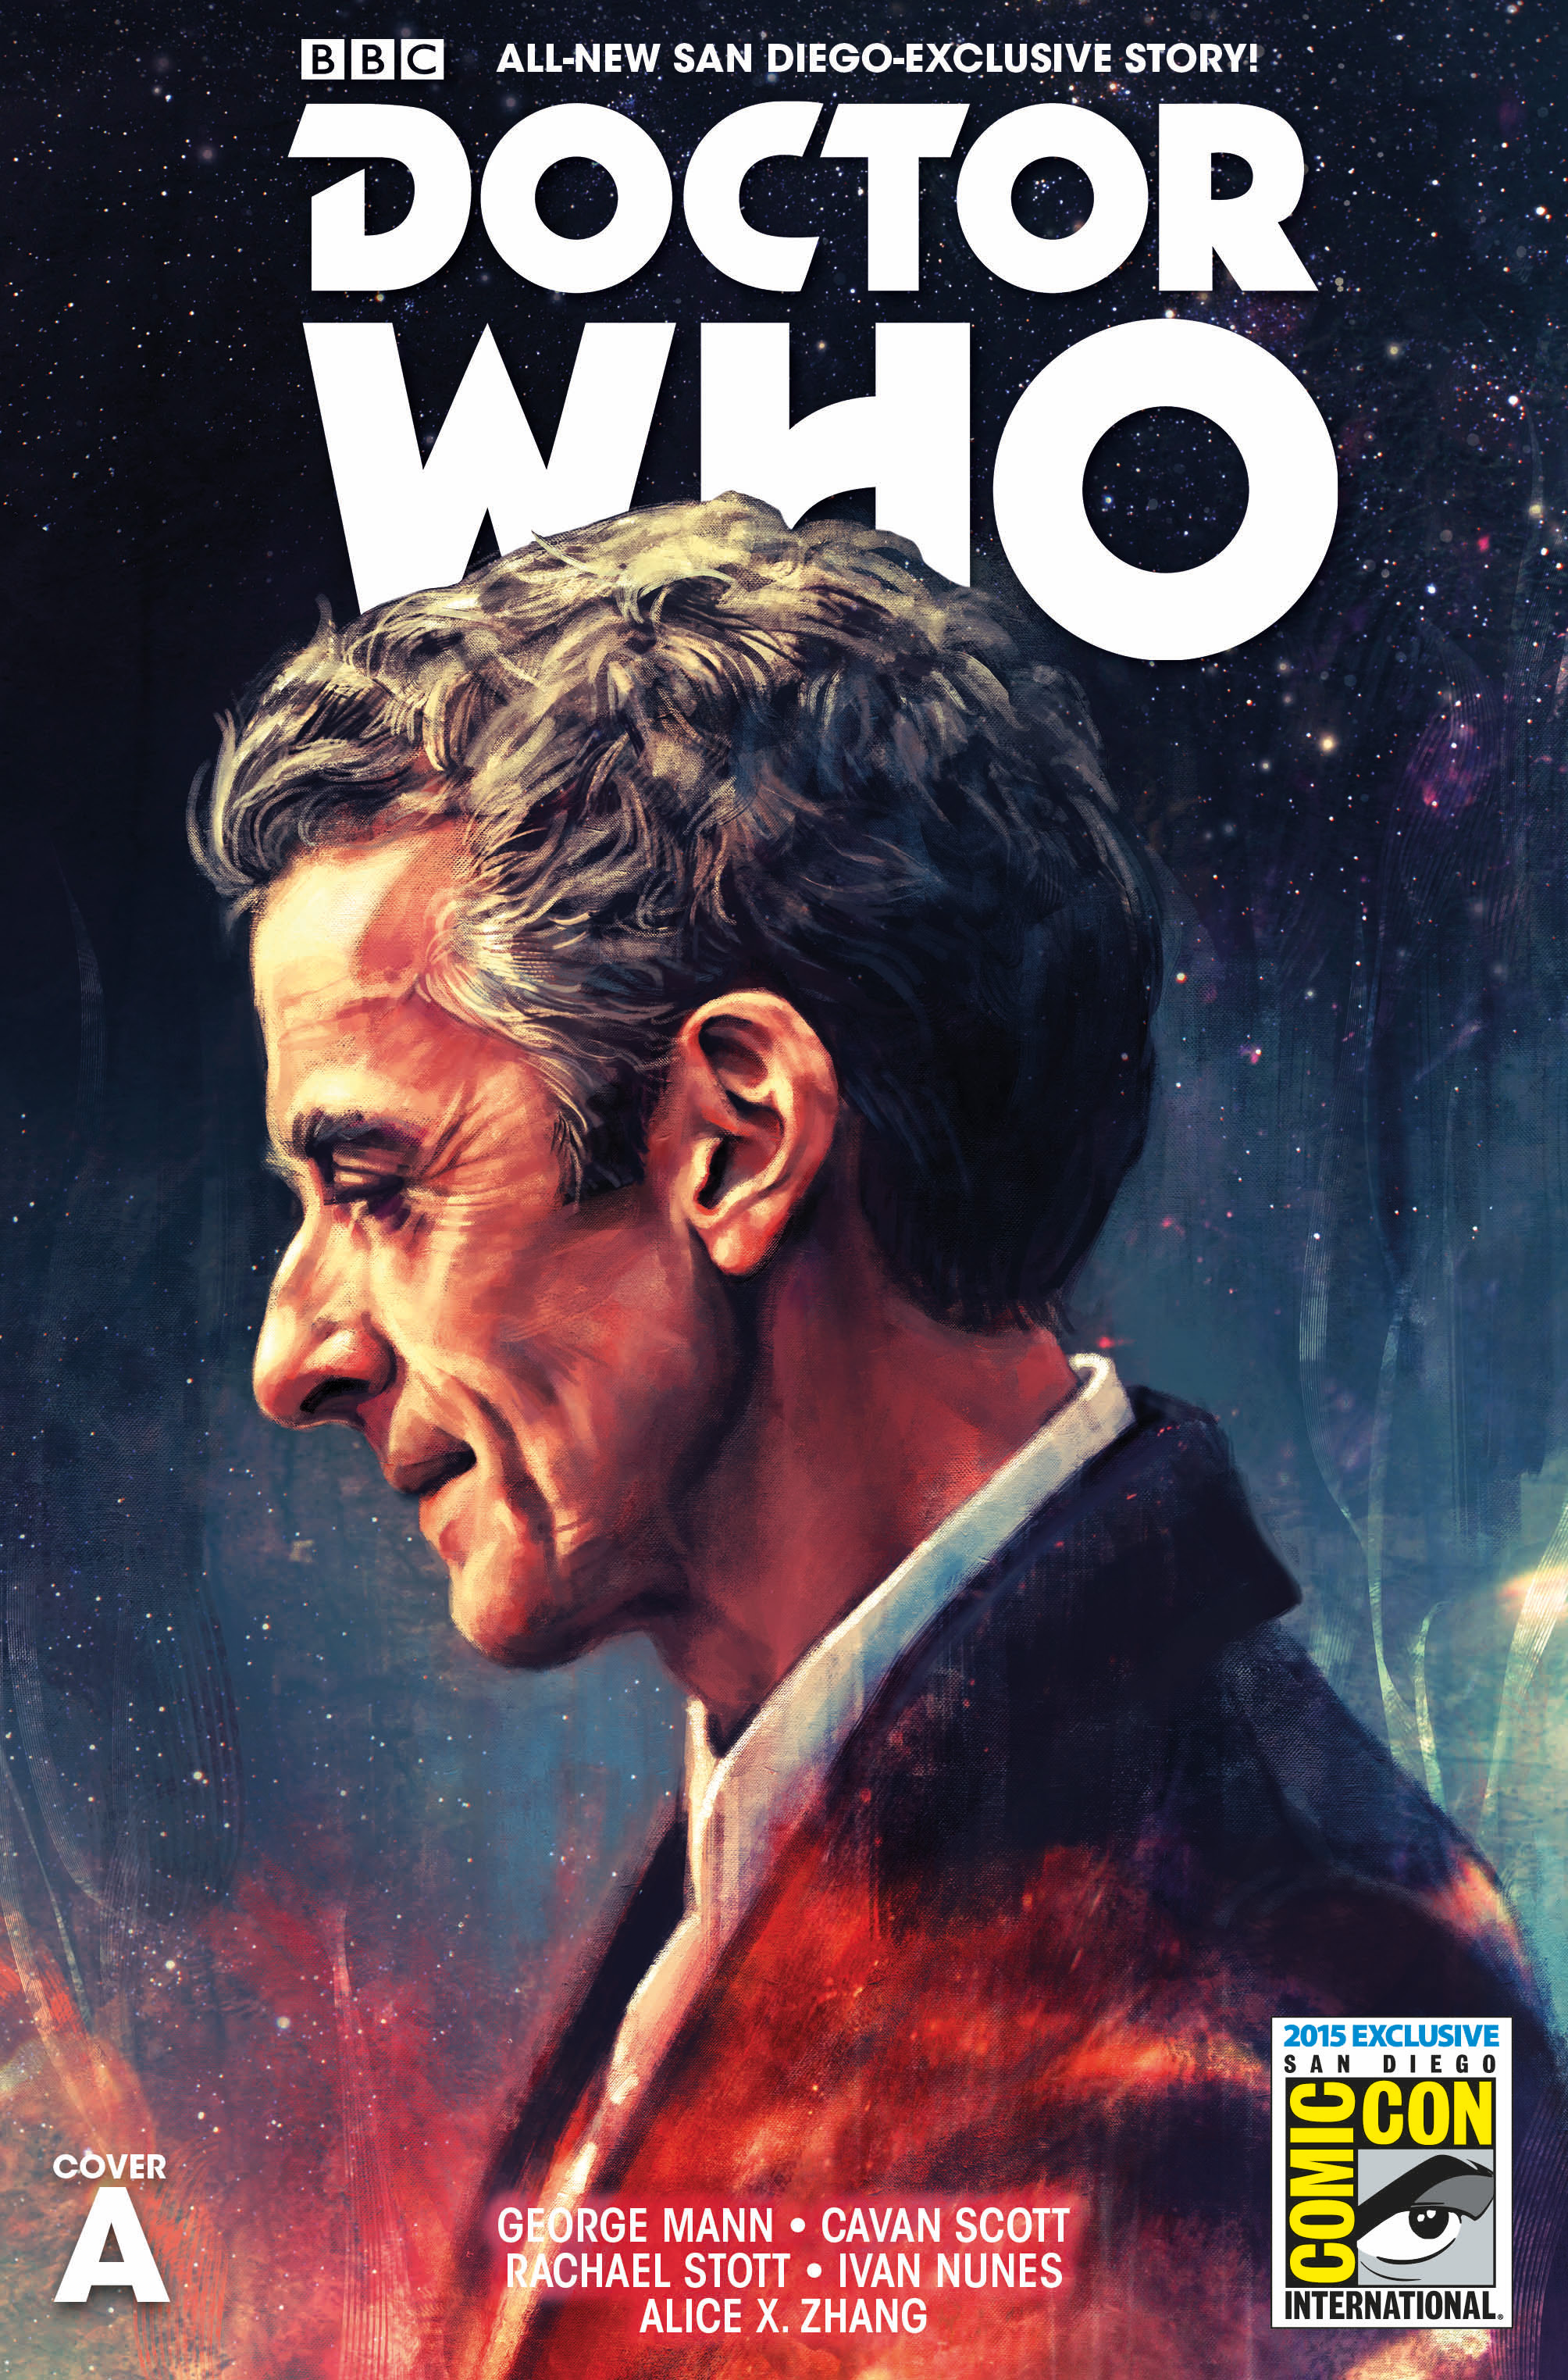 Doctor Who: The Twelfth Doctor SDCC Exclusive (Cover A) (Credit: Titan Comics)